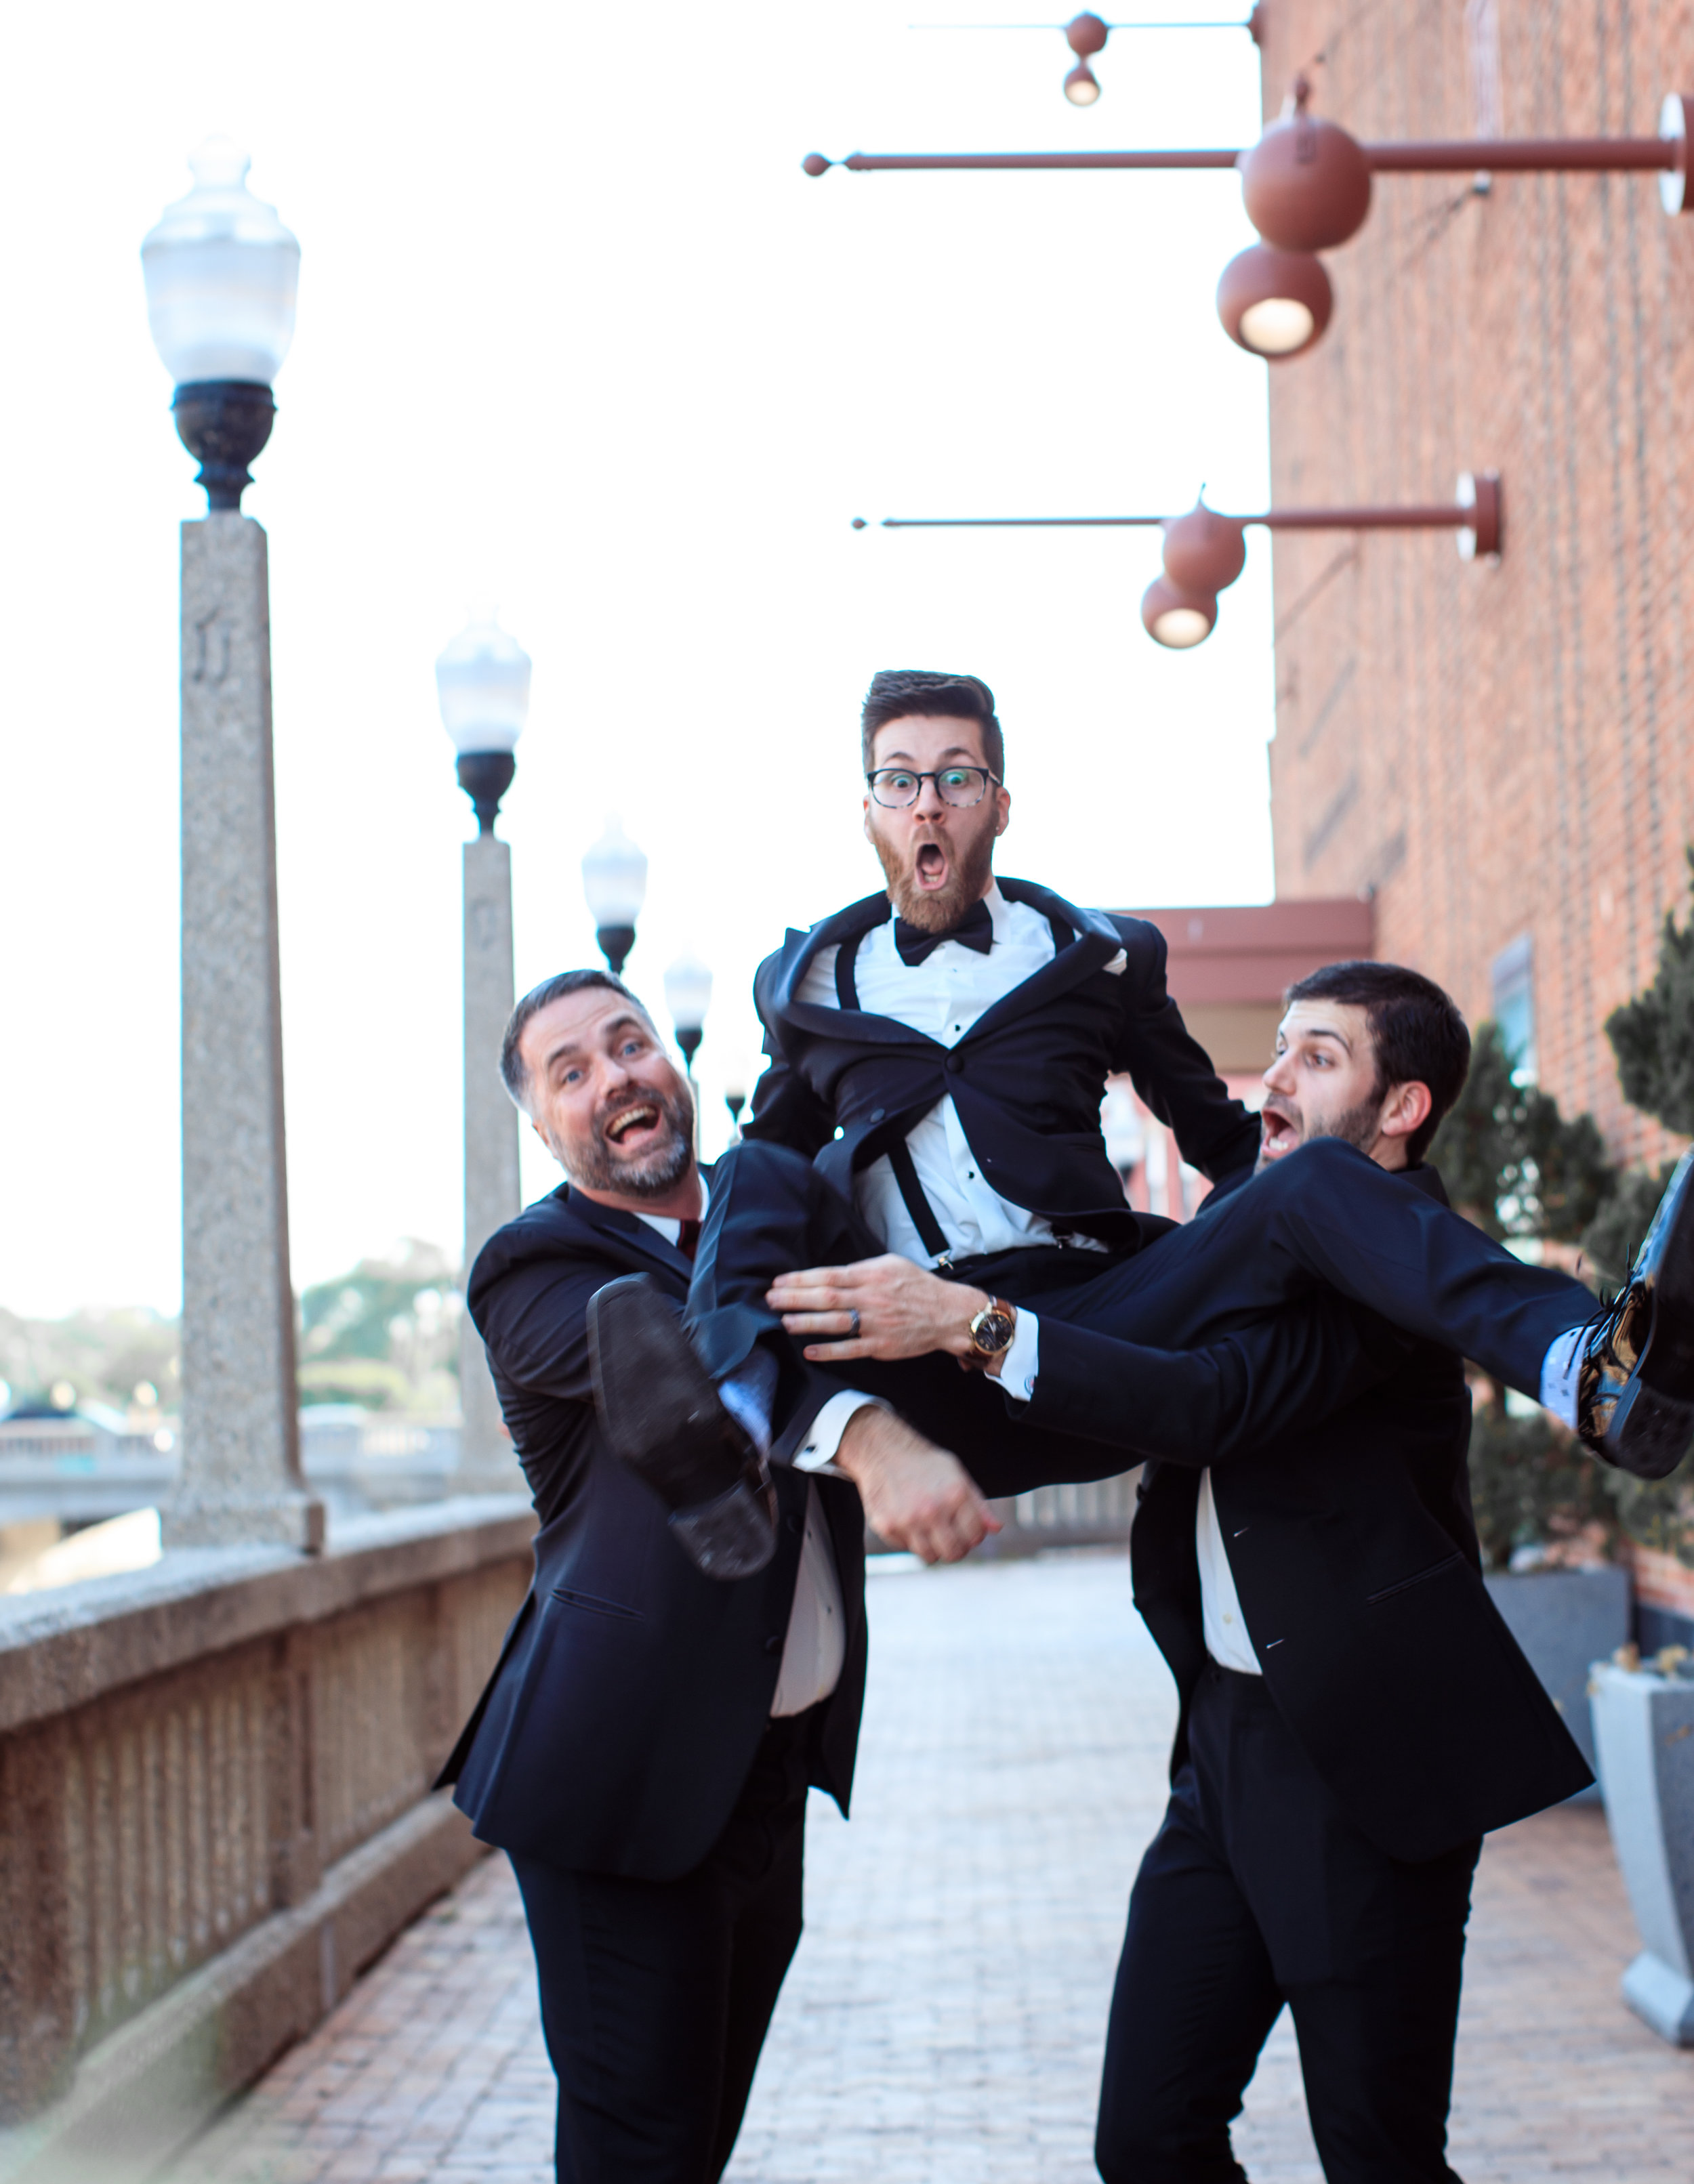 Hilarious-funny-bride-and-groom-take-wedding-photos-to-next-level52.jpg